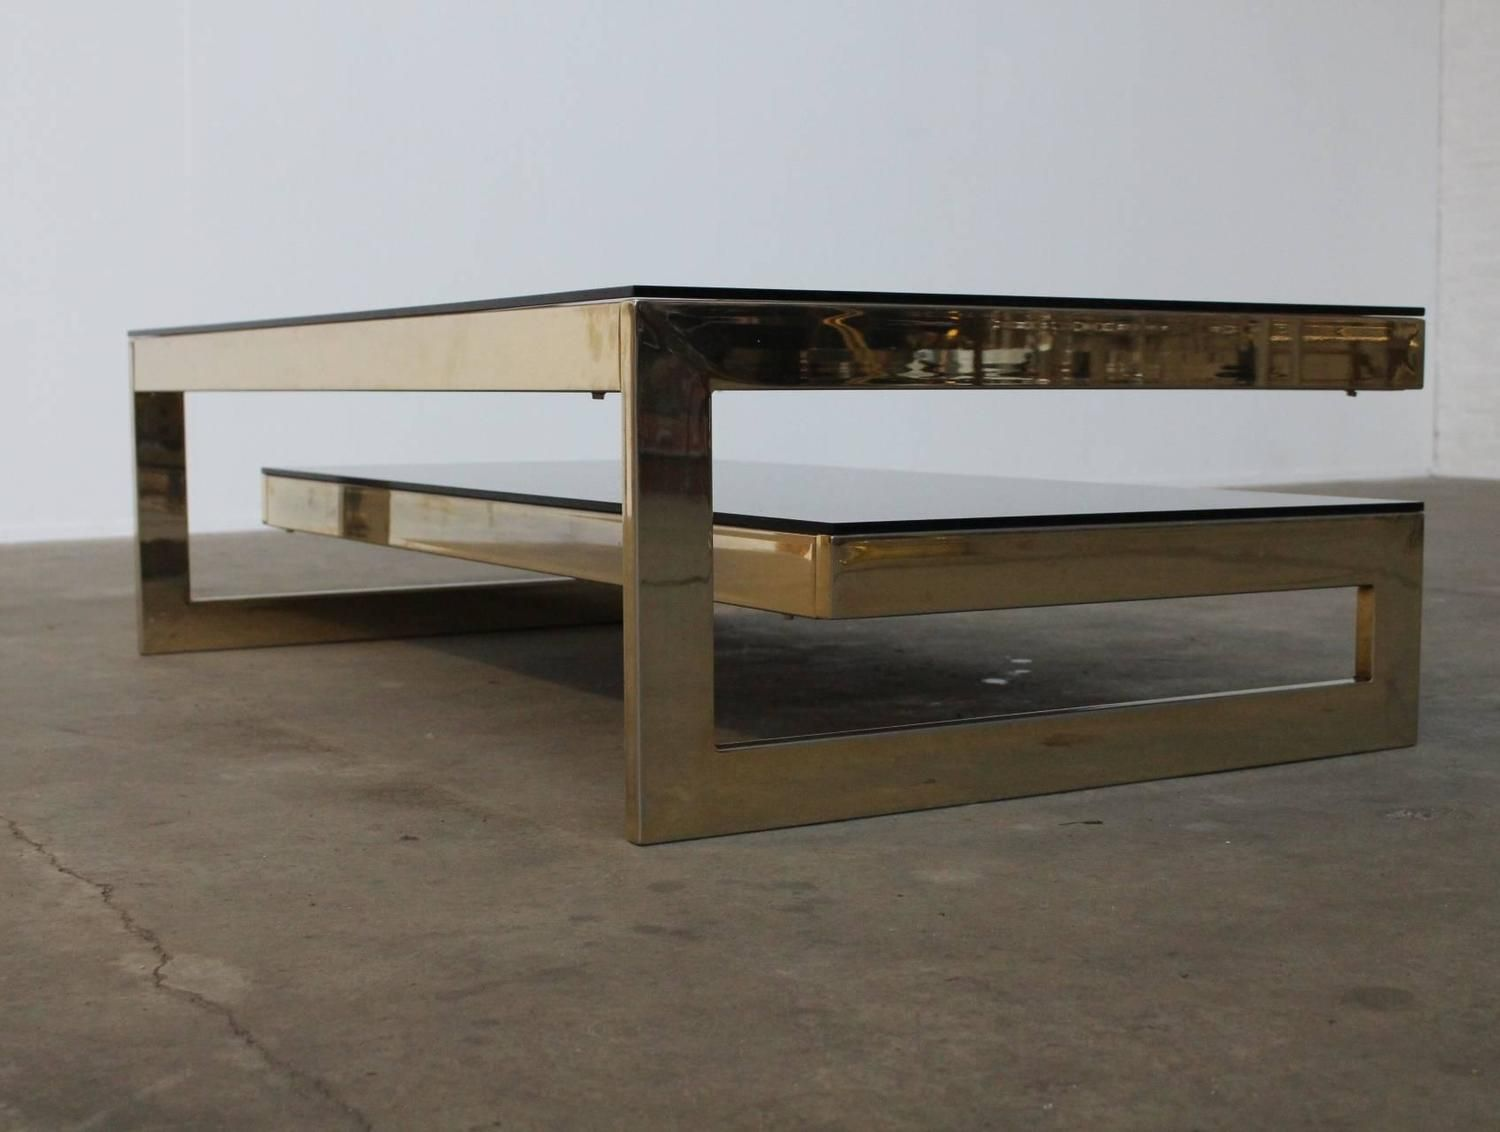 G Shaped 23 Karat Gold Plated Two Level Coffee Table Maison